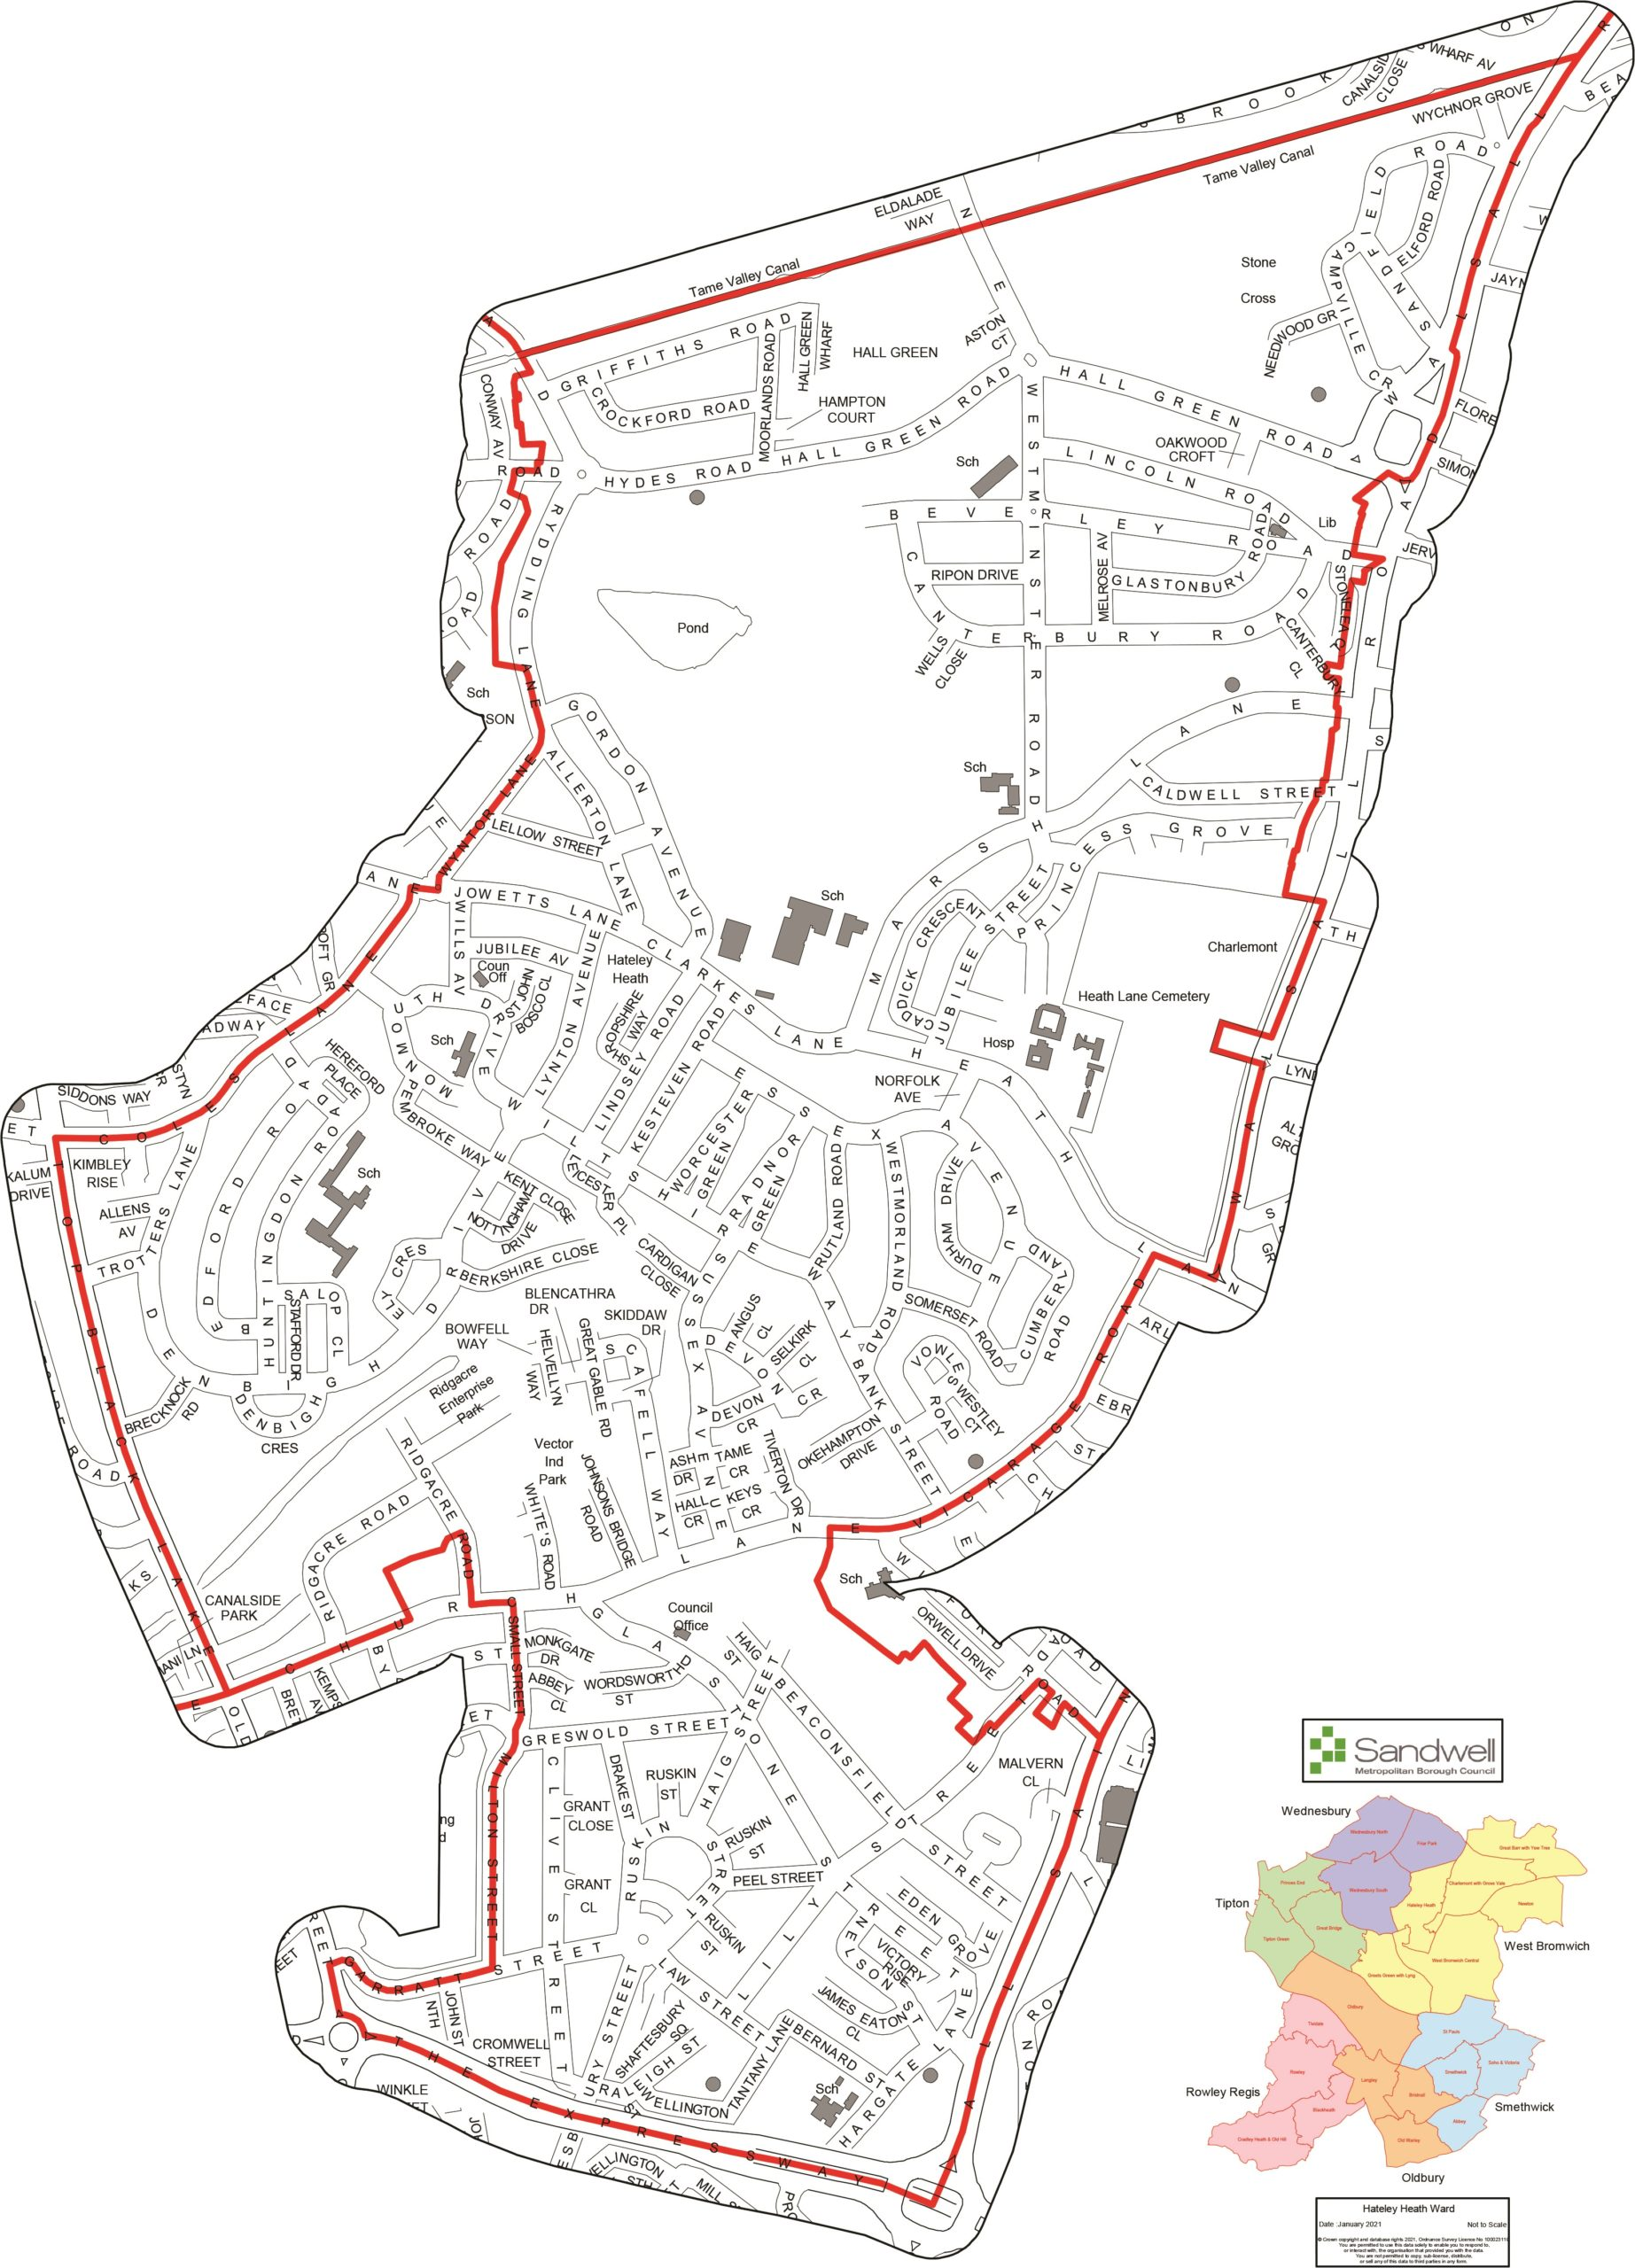 Warning as Covid-19 infection rates double local average in Hateley Heath ward Image